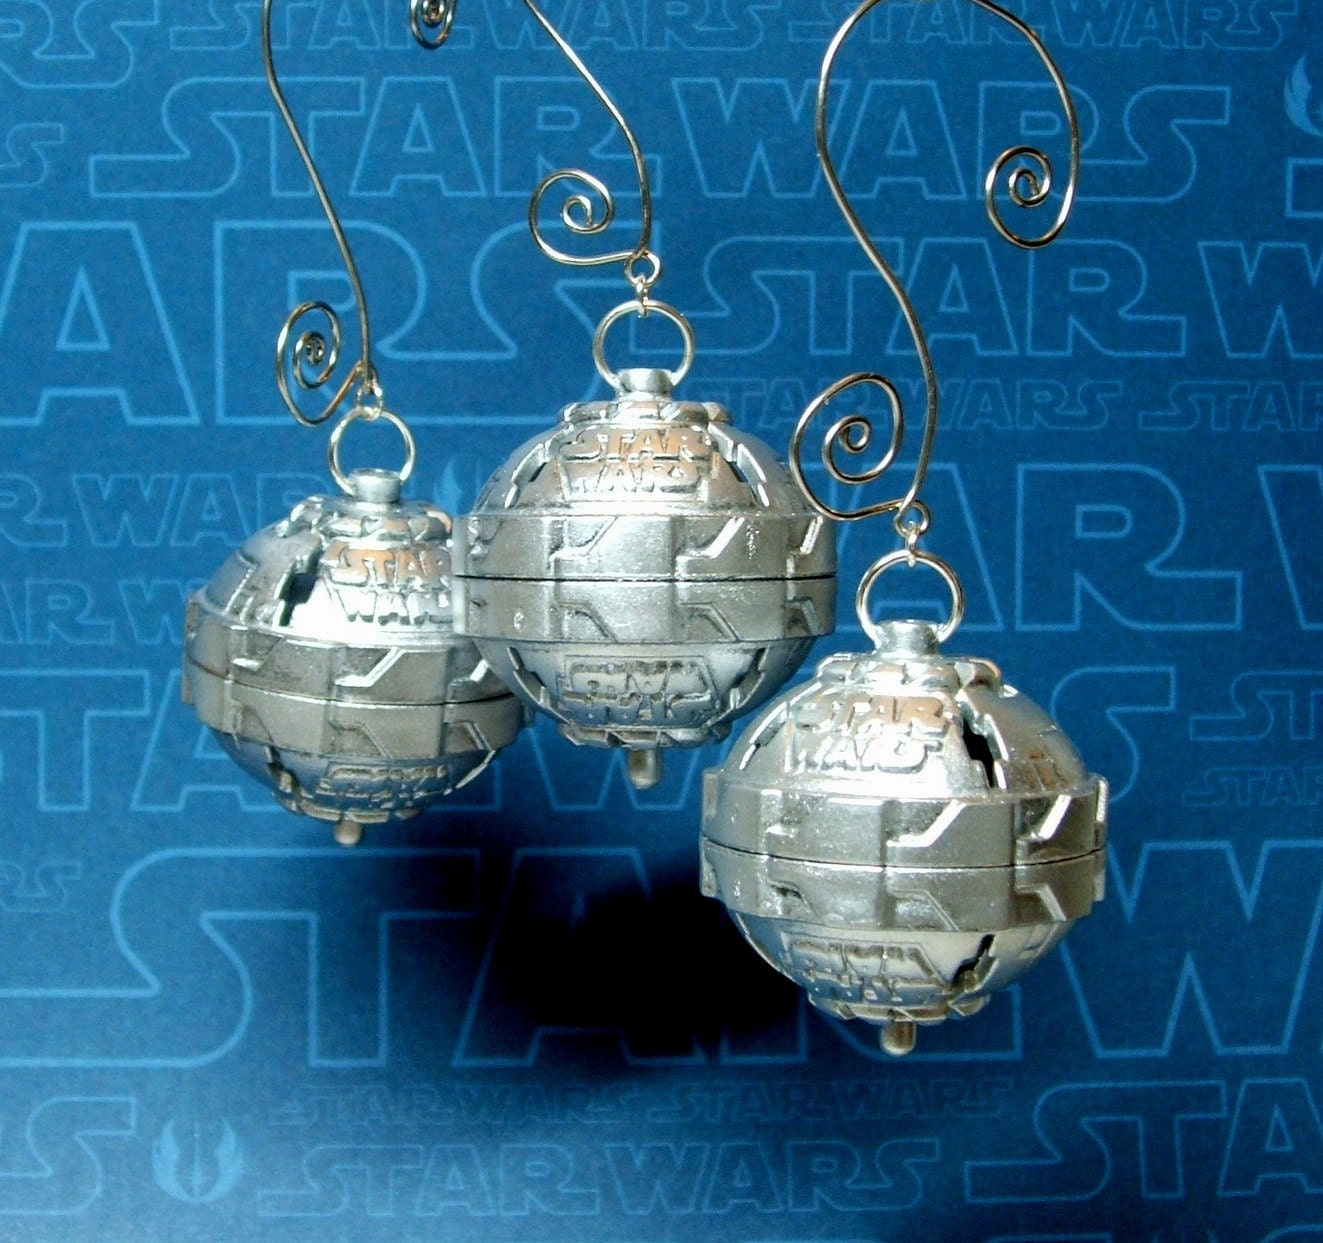 Star Wars Christmas Ornaments In Silver Set Of 3 By MoLGifts